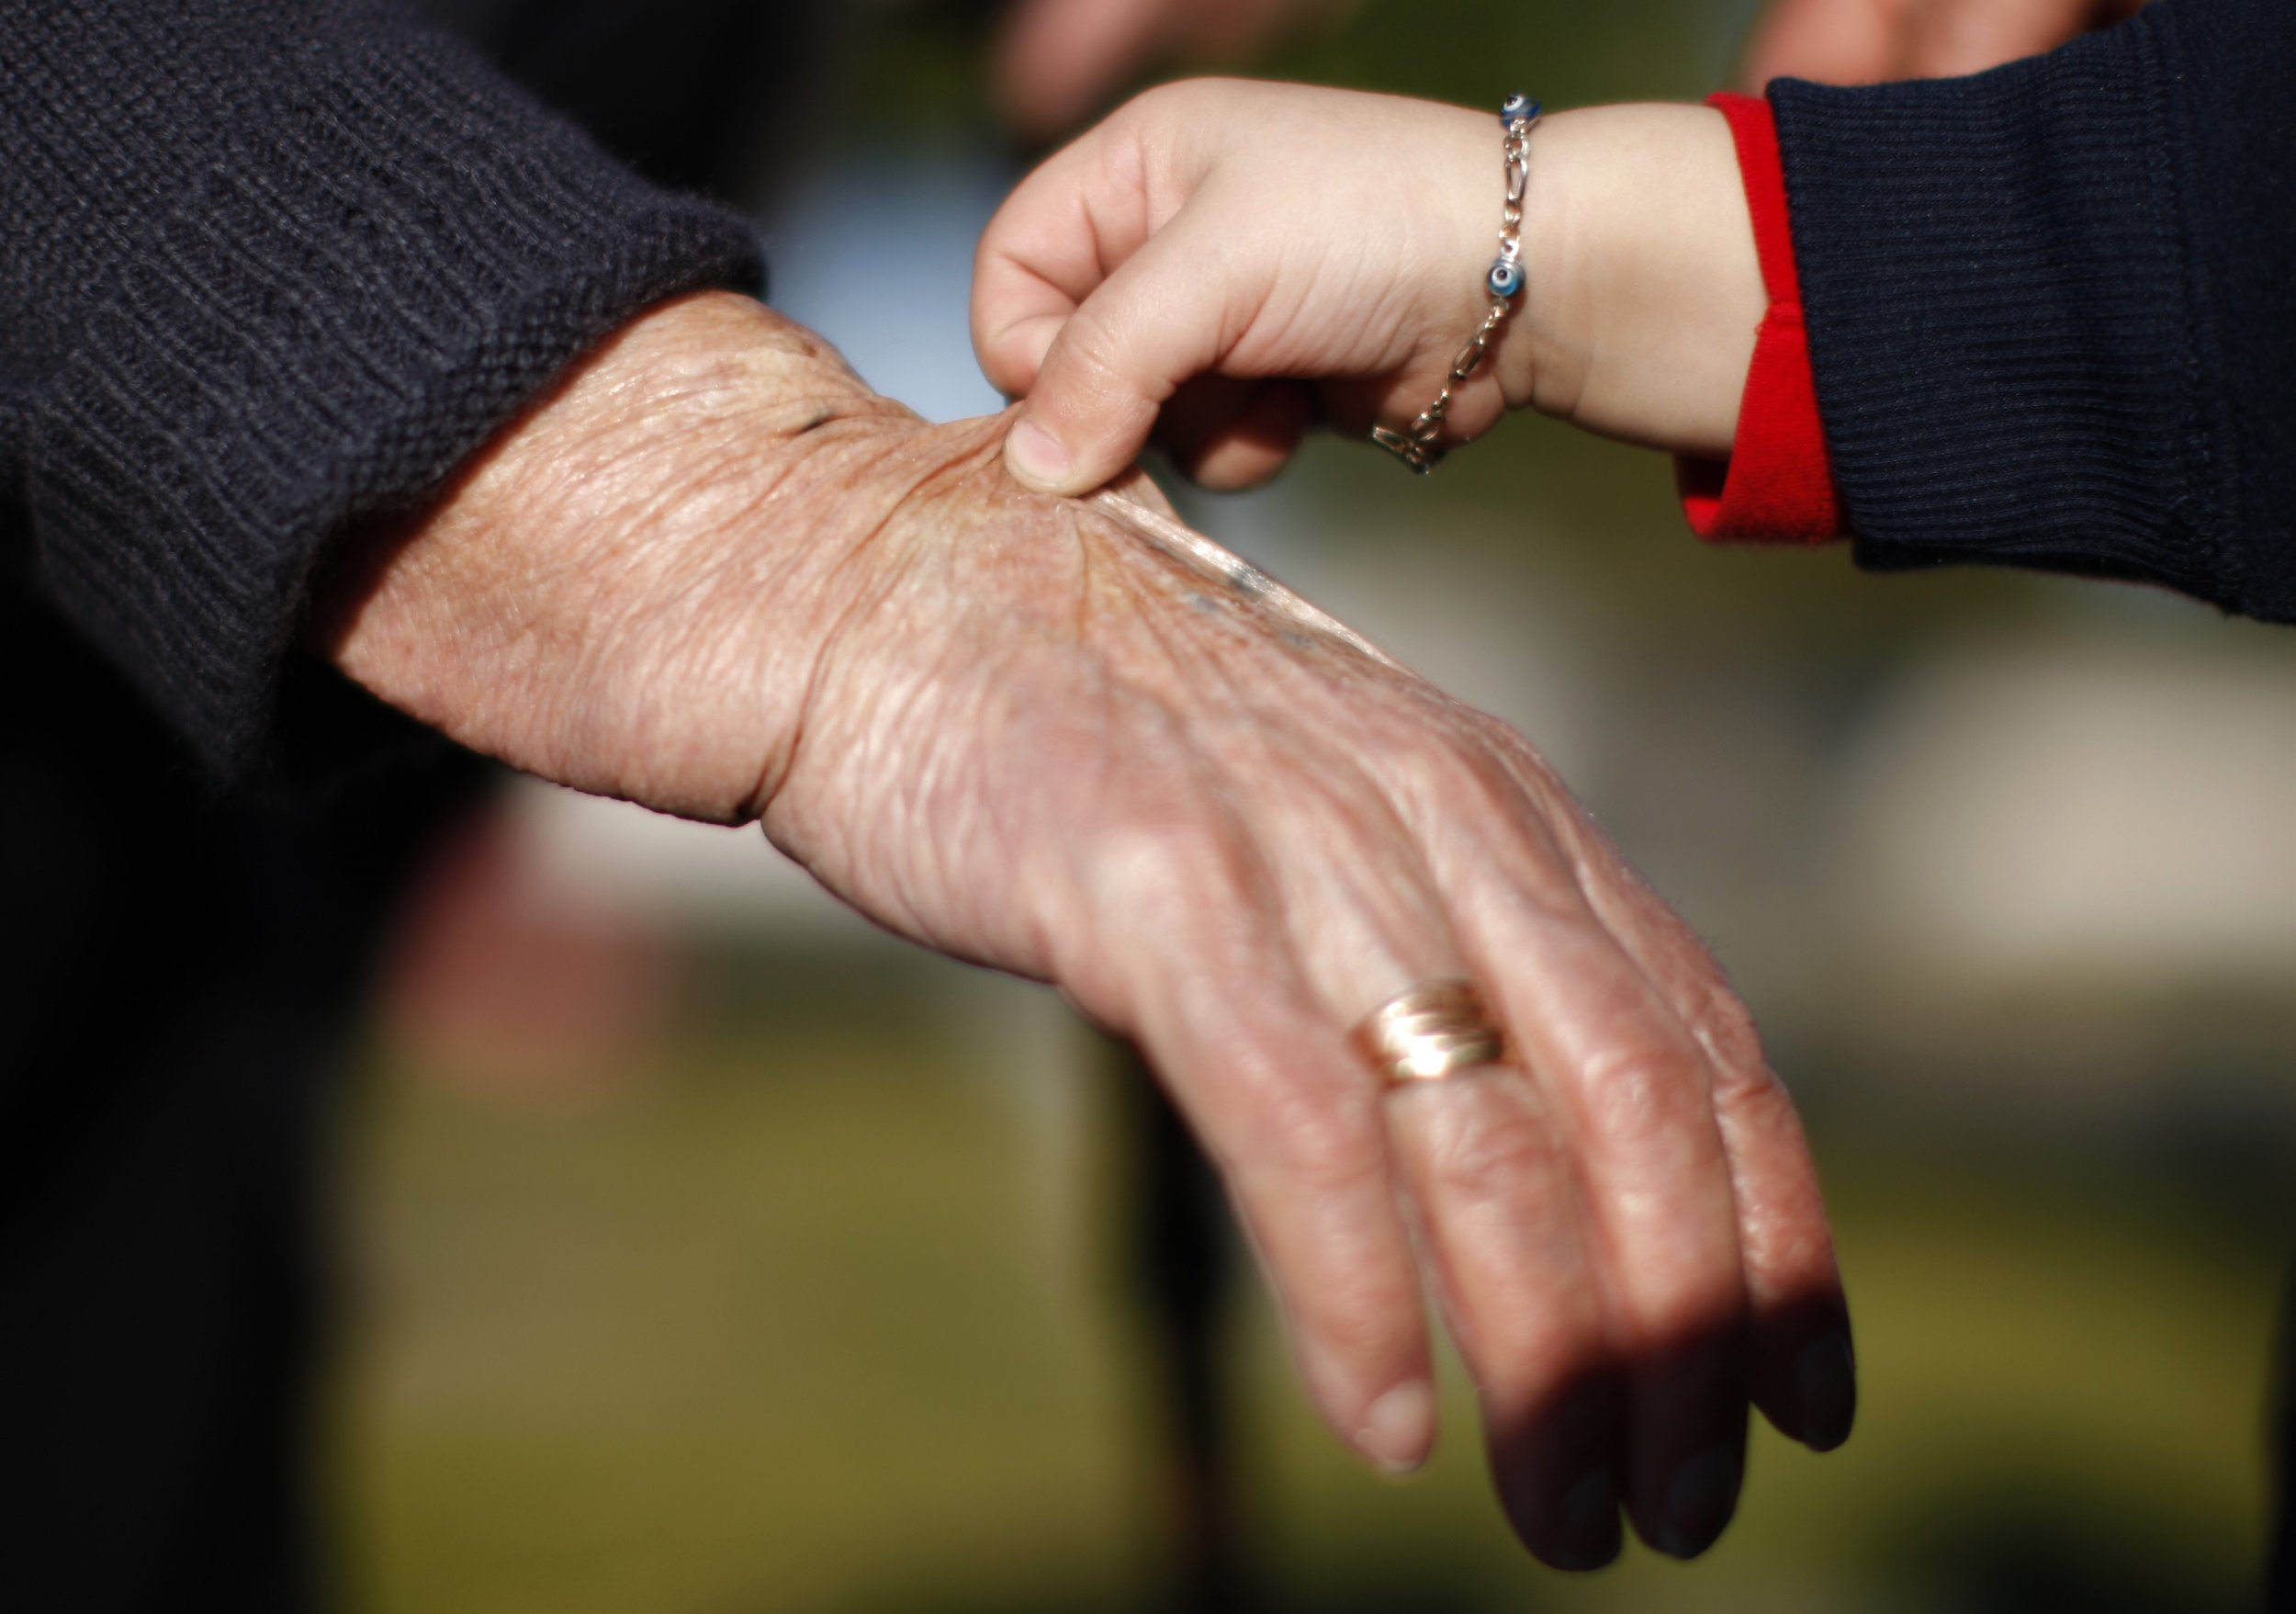 The gap in life expectancy between rich and poor in England and Wales is forecast to widen in new study